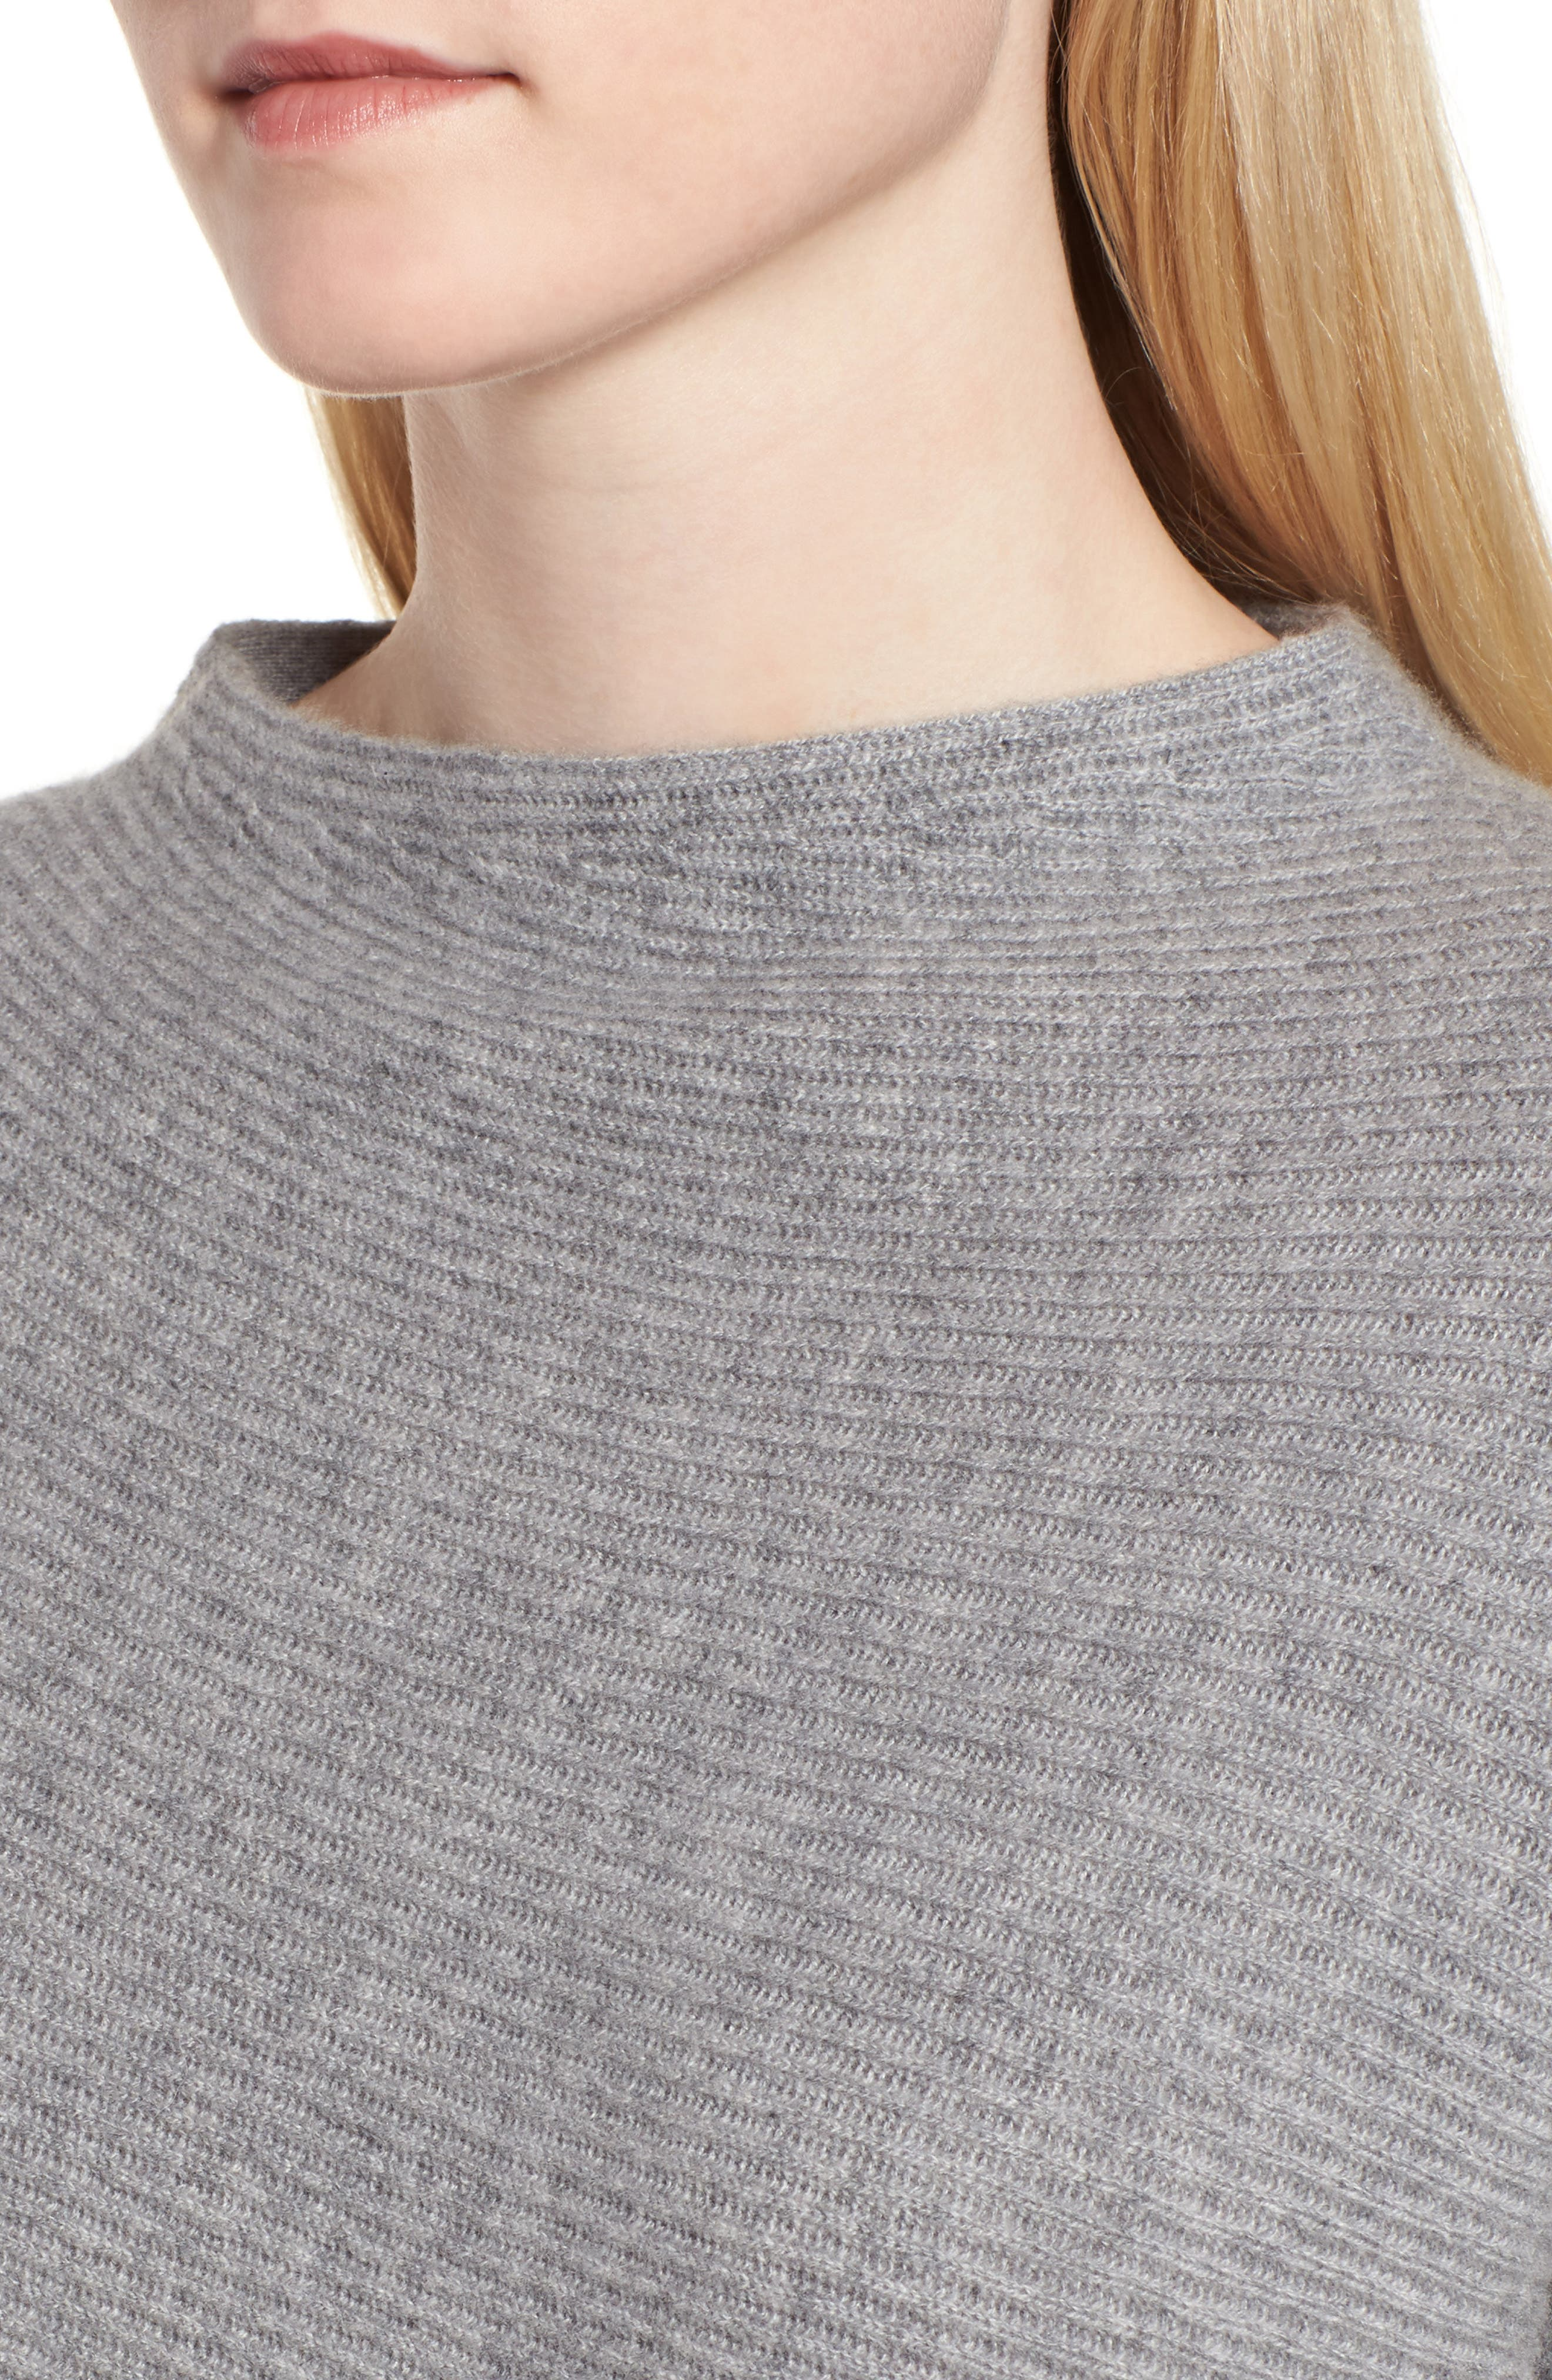 Cashmere Asymmetrical Pullover,                             Alternate thumbnail 4, color,                             GREY FILIGREE HEATHER